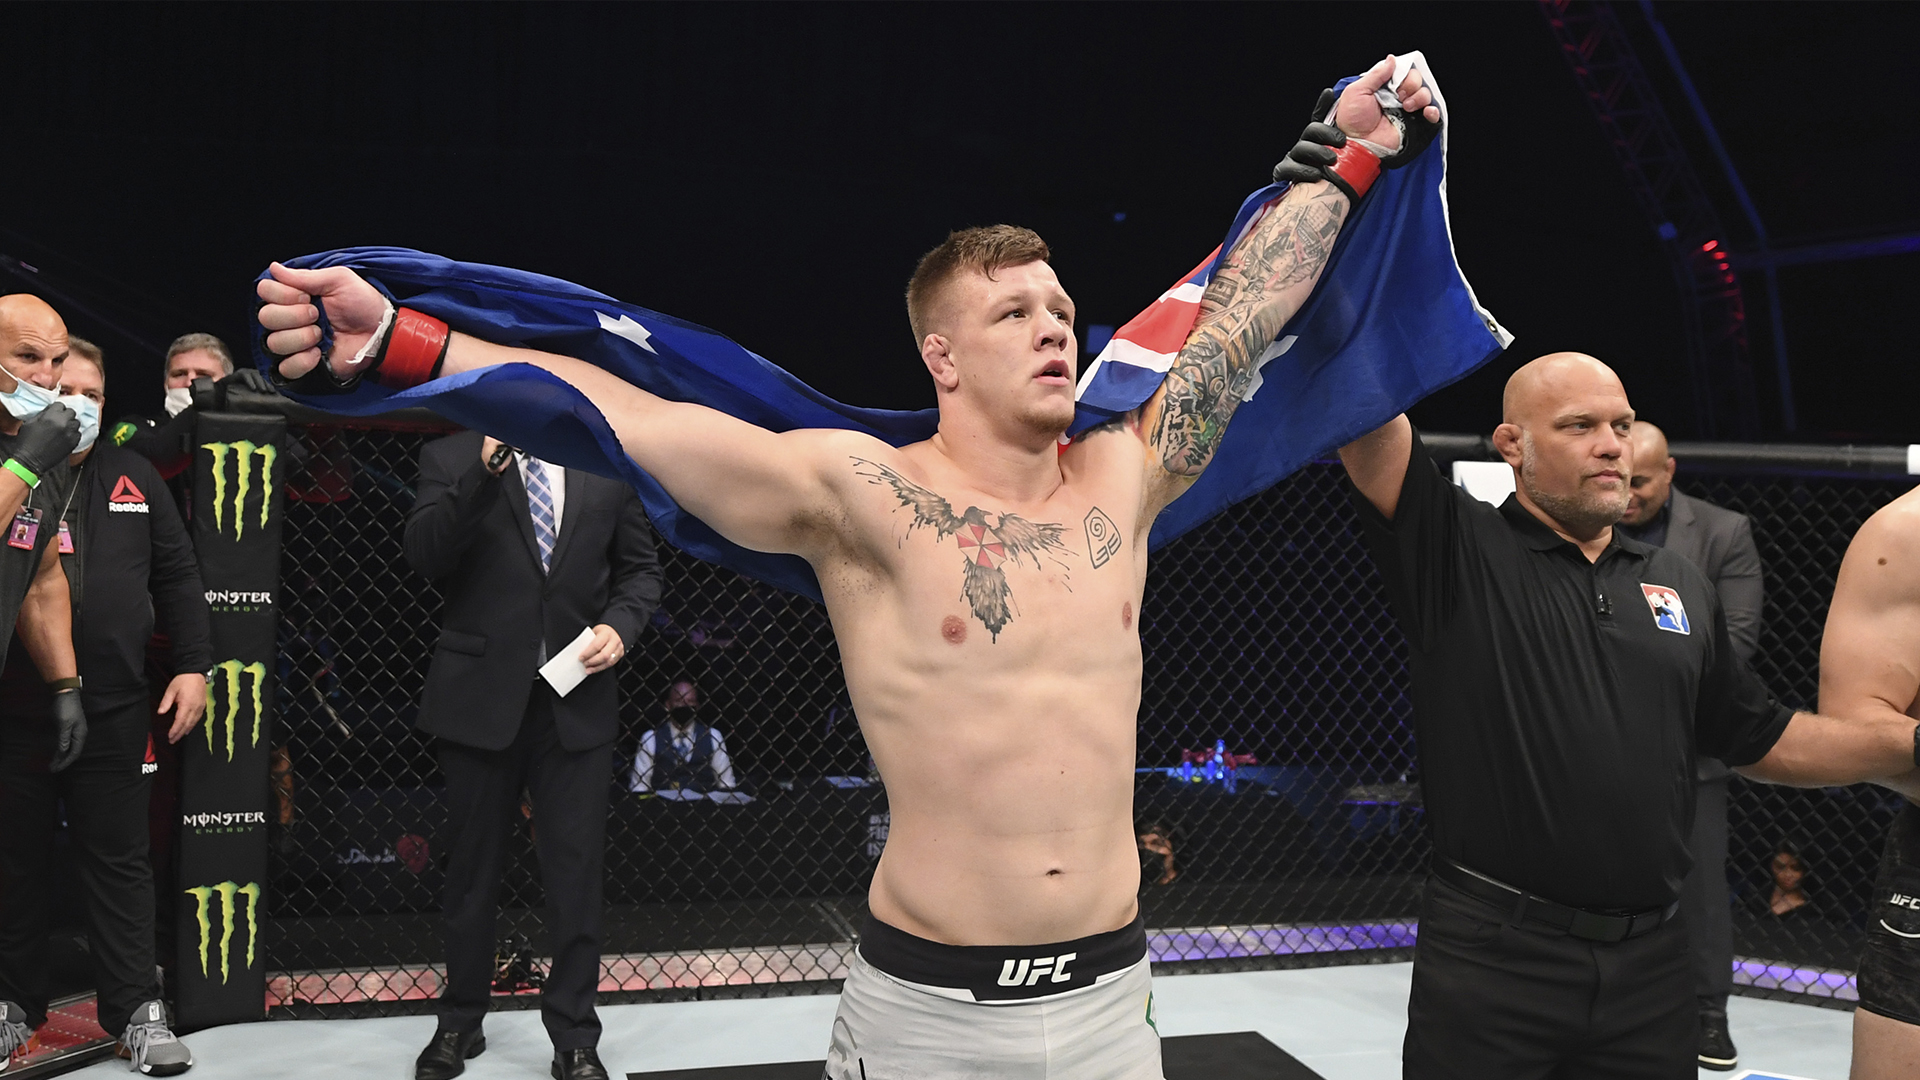 Jimmy Crute of Australia celebrates his victory over Modestas Bukauskas of Lithuania in their light heavyweight bout during the UFC Fight Night event inside Flash Forum on UFC Fight Island on October 18, 2020 in Abu Dhabi, United Arab Emirates. (Photo by Josh Hedges/Zuffa LLC via Getty Images)